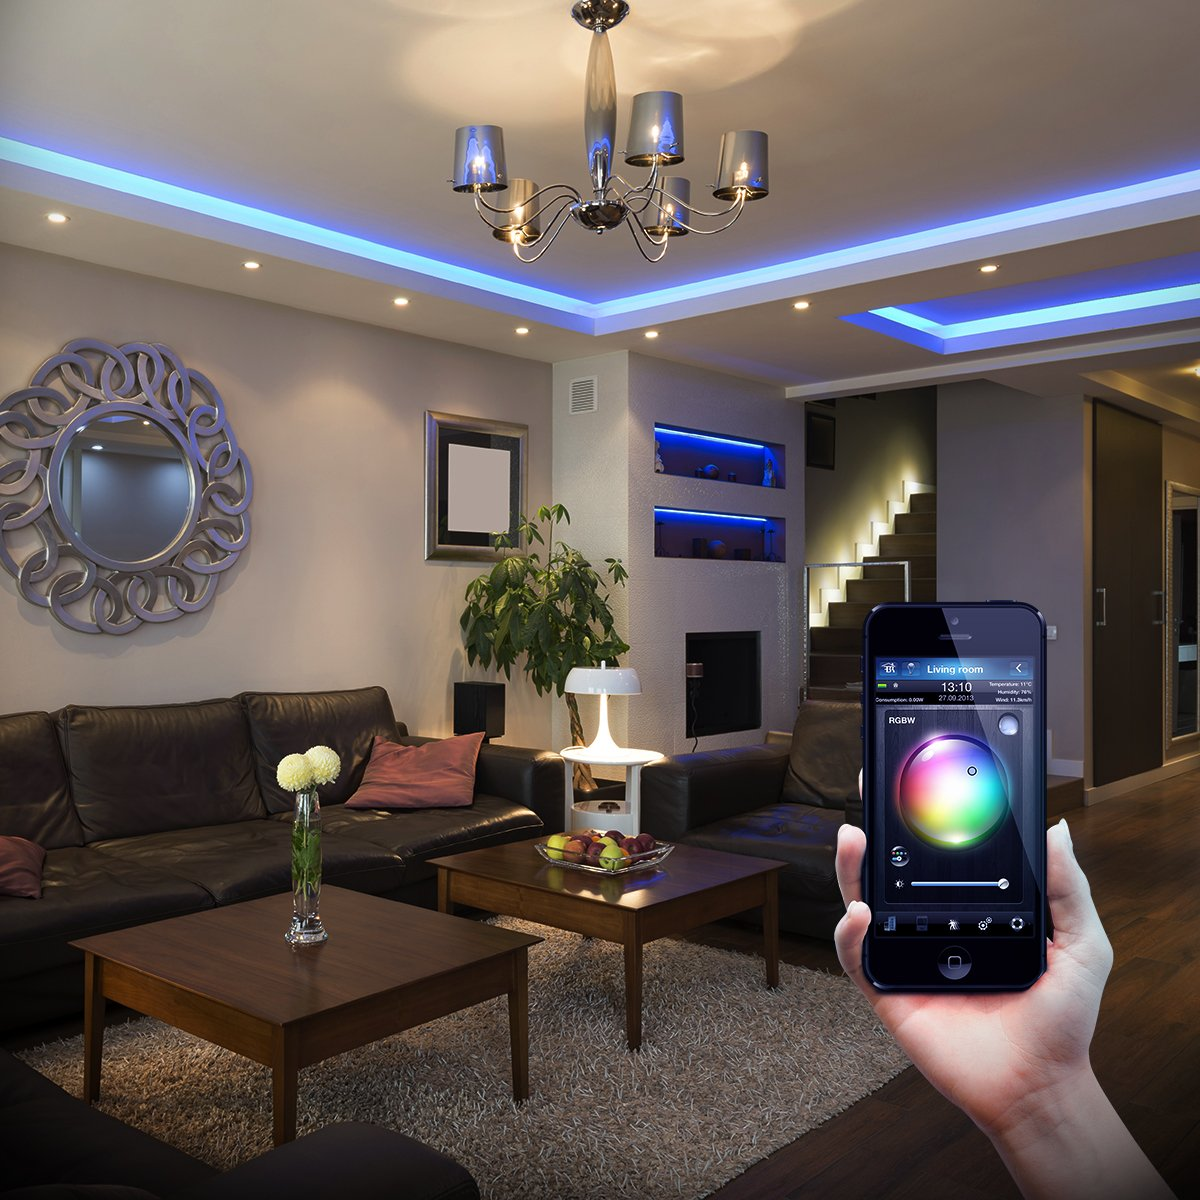 Fibaro Rgbw Micro Controller Z Wave Works With Rgb Led Circuitslightech Driversled Electronic Driverled Circuit Strips Home Improvement